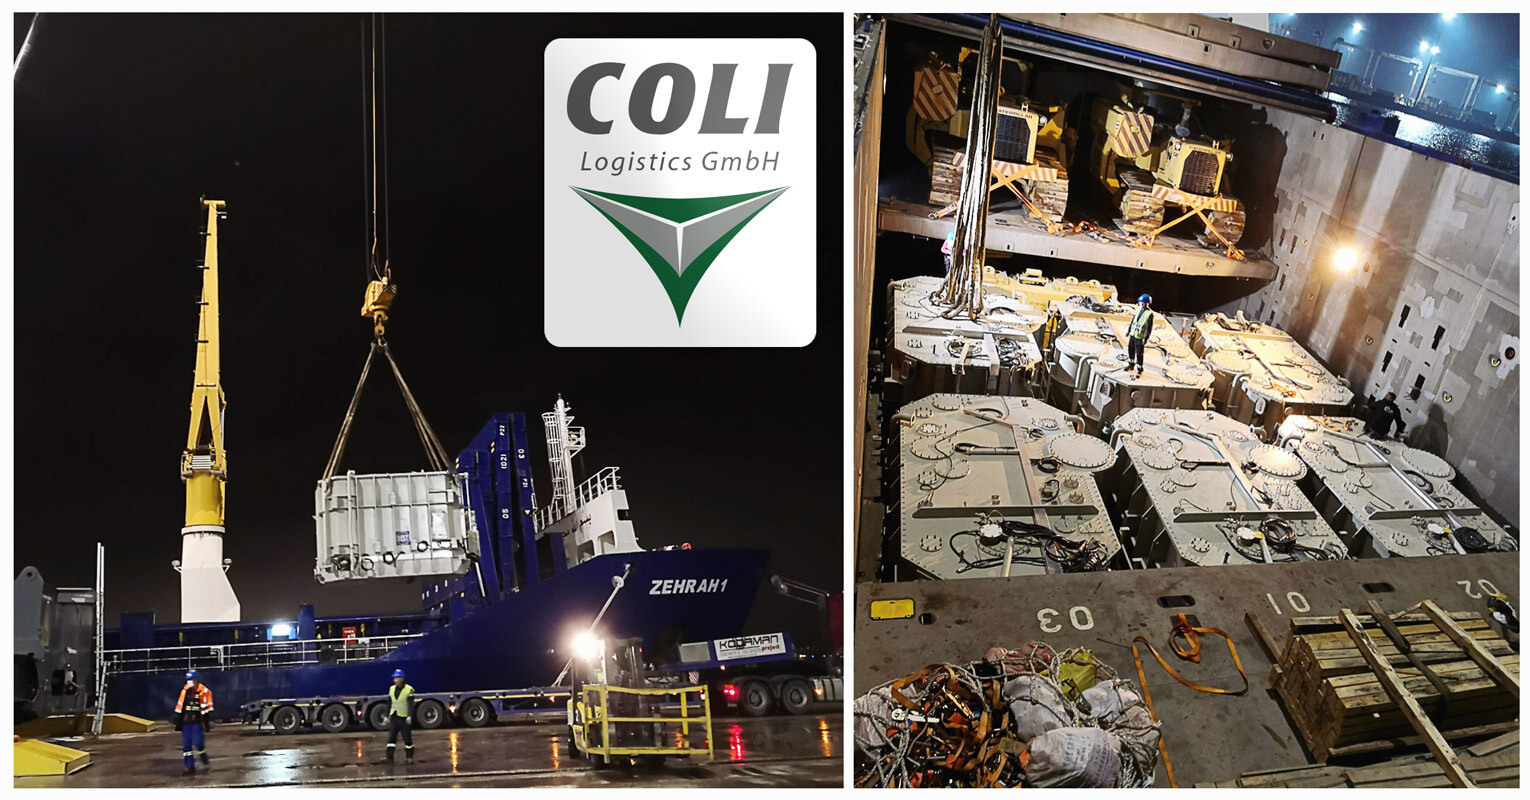 Coli Project Cargo Istanbul Transported 6 Sets of Transformers to Umm Qasr